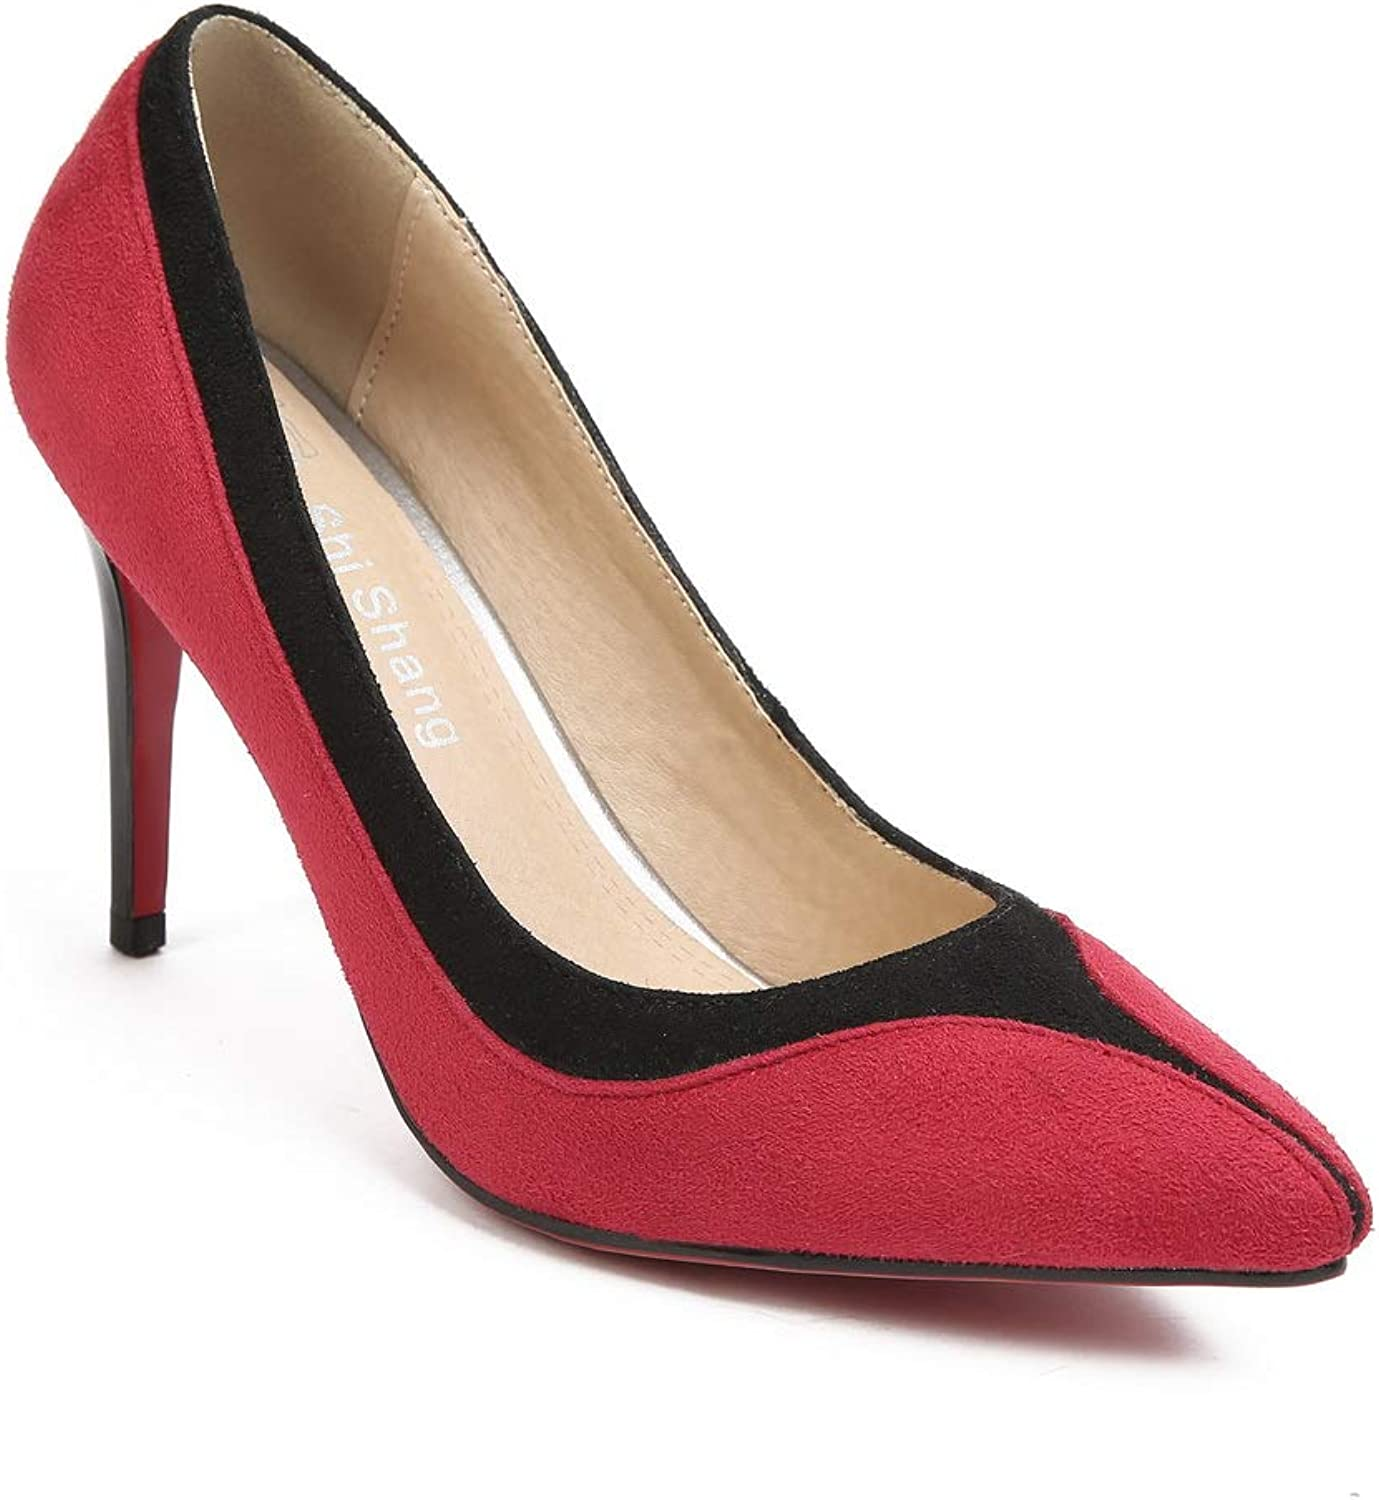 1TO9 Womens Assorted colors Nubuck Leather Pumps shoes MMS06379